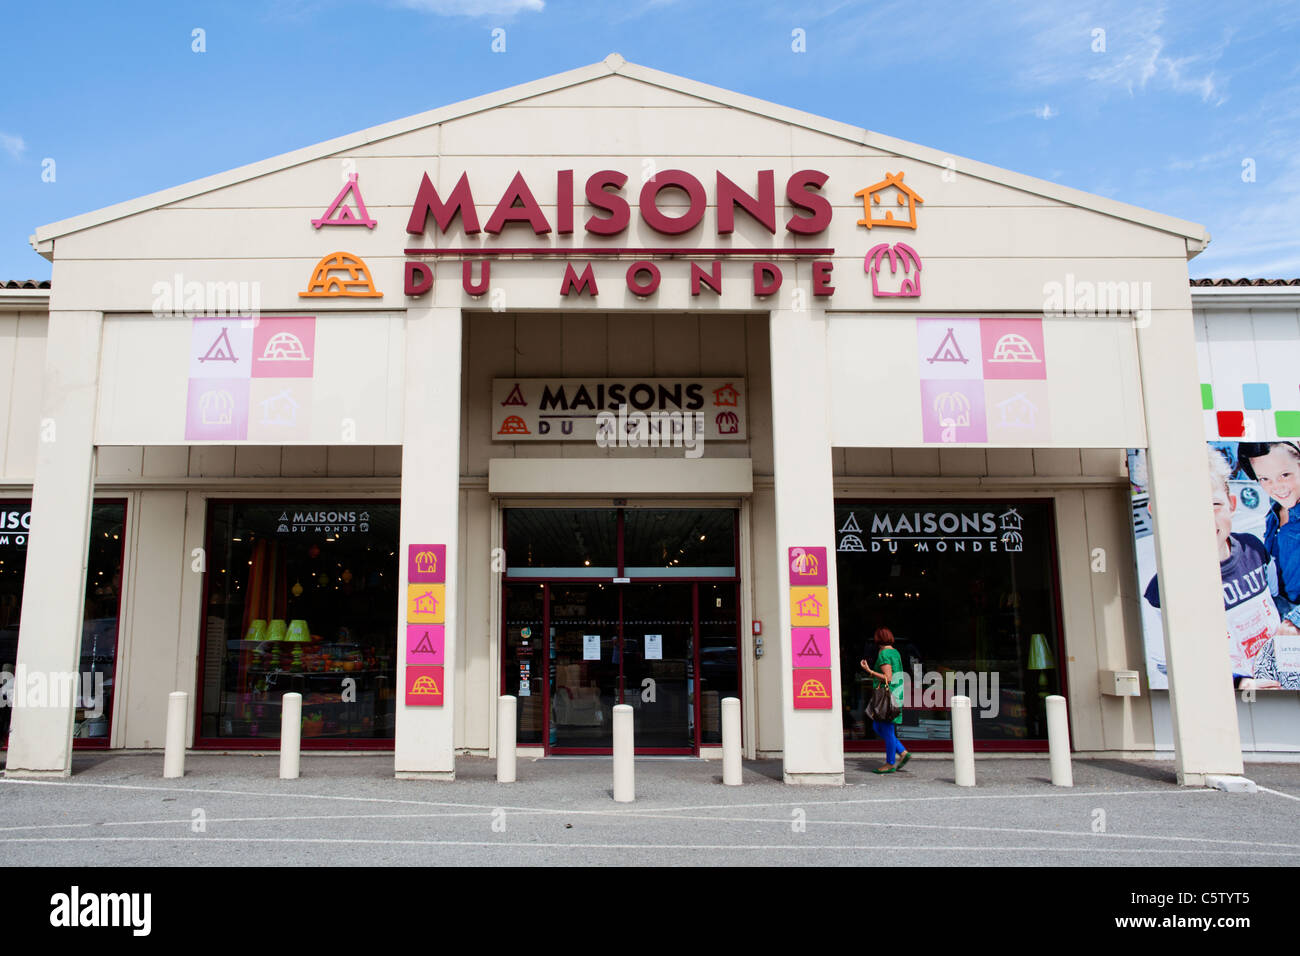 Maisons Stock Photos Maisons Stock Images Alamy